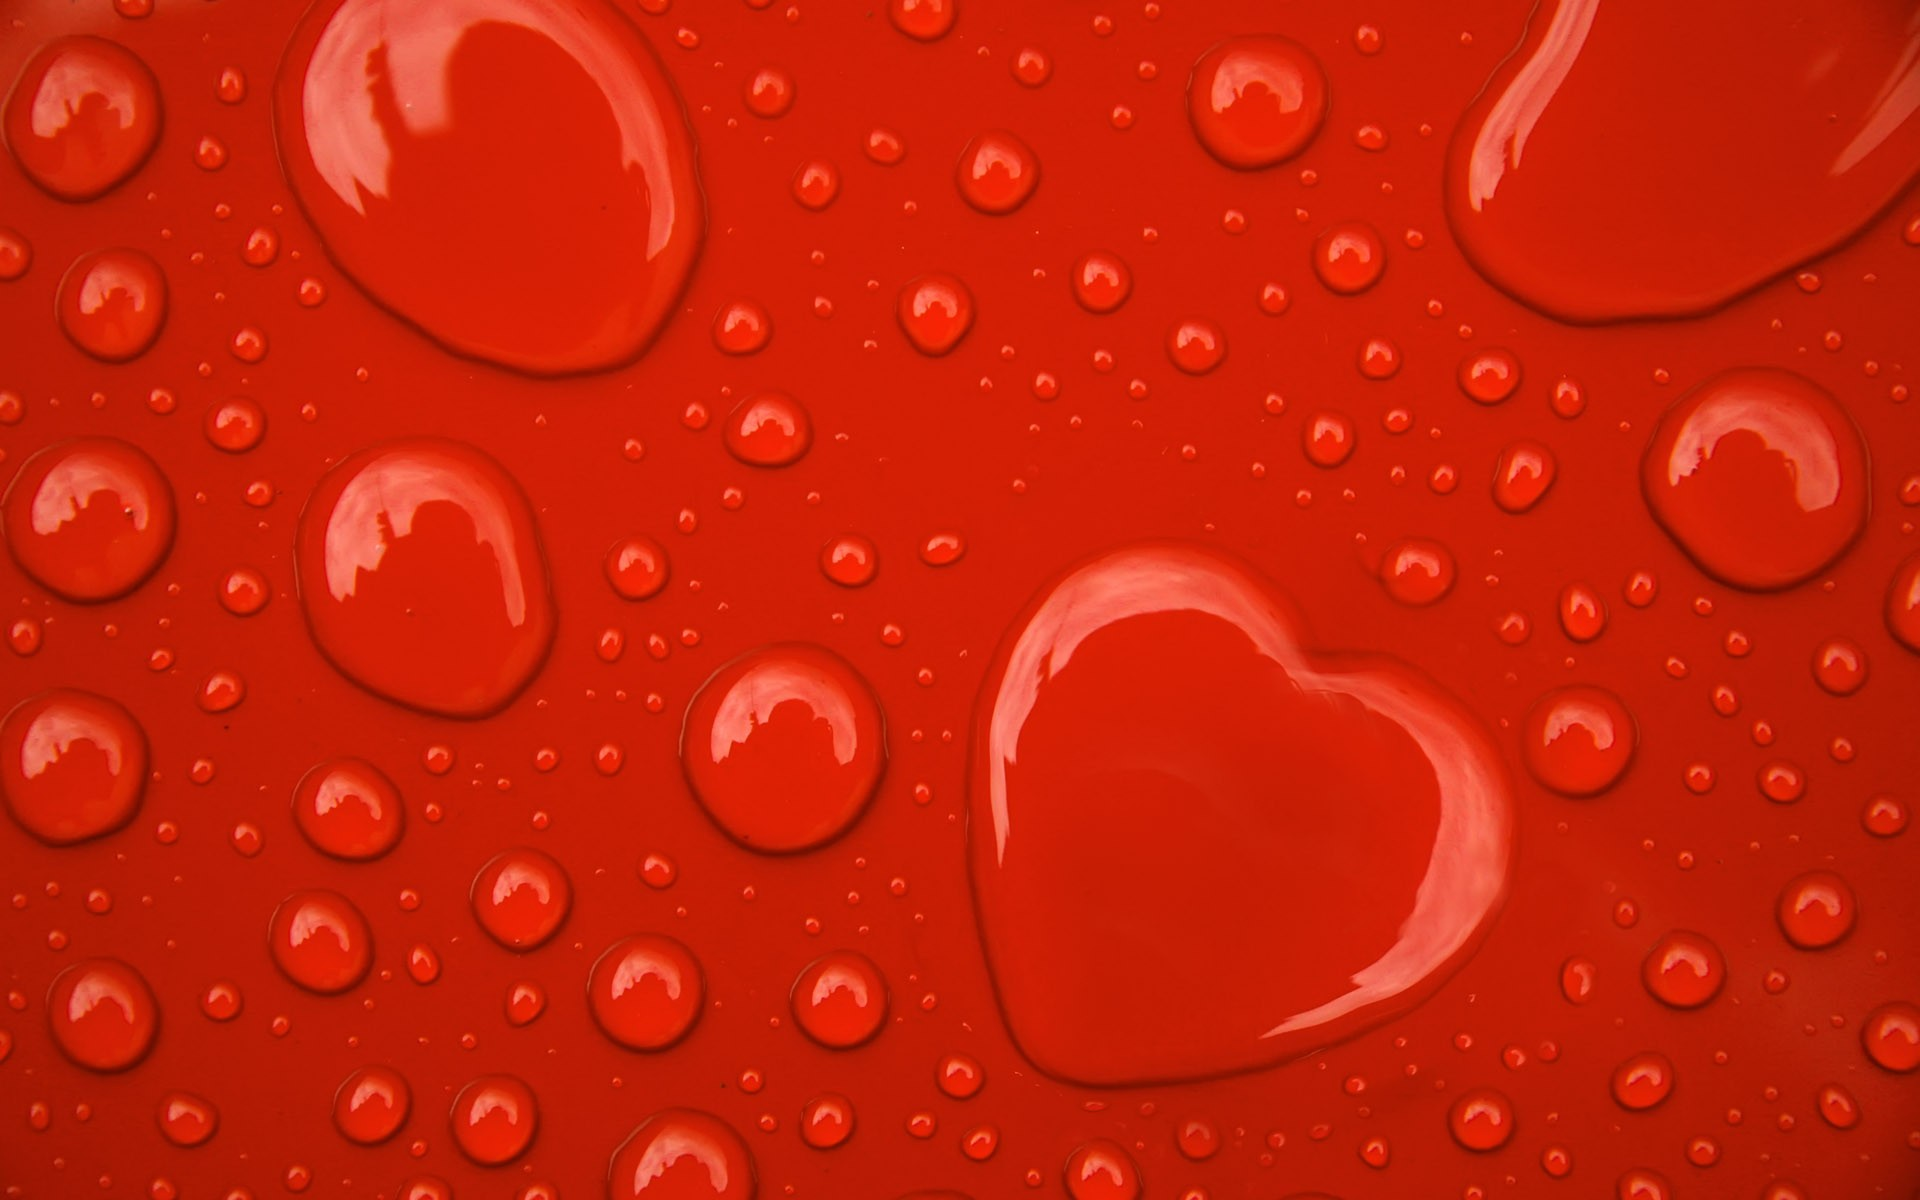 water wallpaper hearts